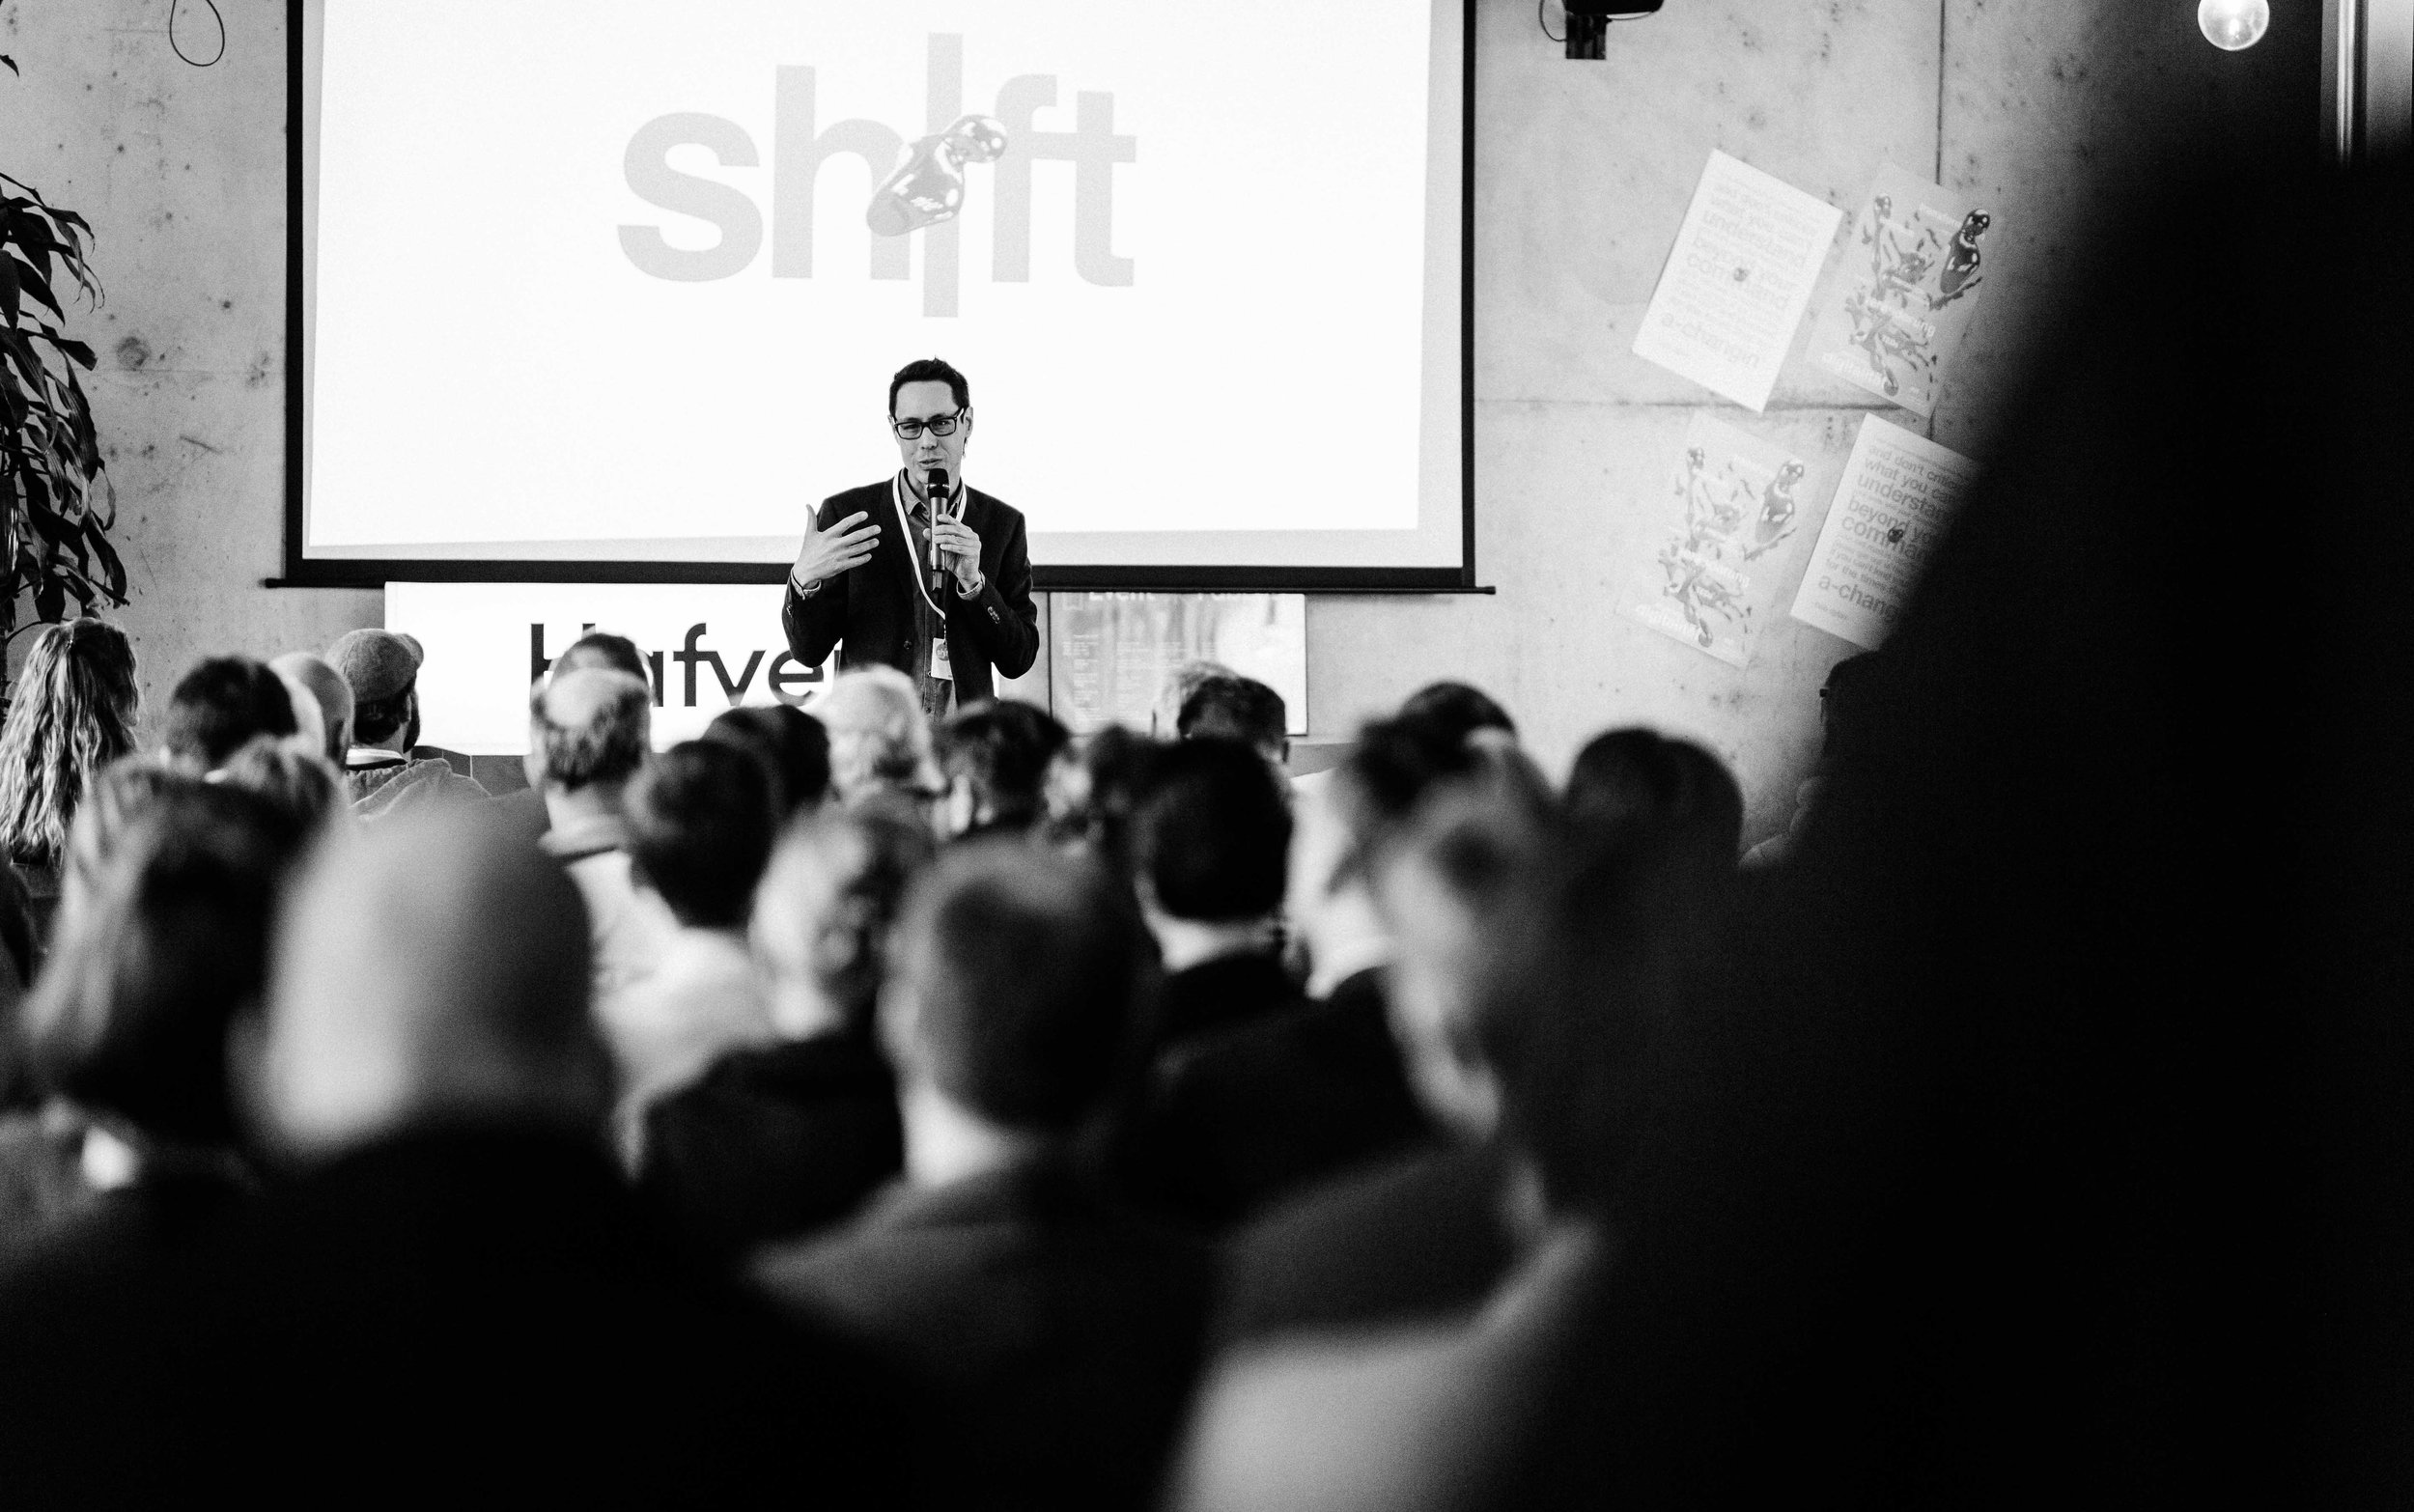 #shifthappens - A new conference format in 2018 for Digitization, Culture & Ethics. My role: inventor, host, designer, social media, web. Went #7 in German Twitter Trends.